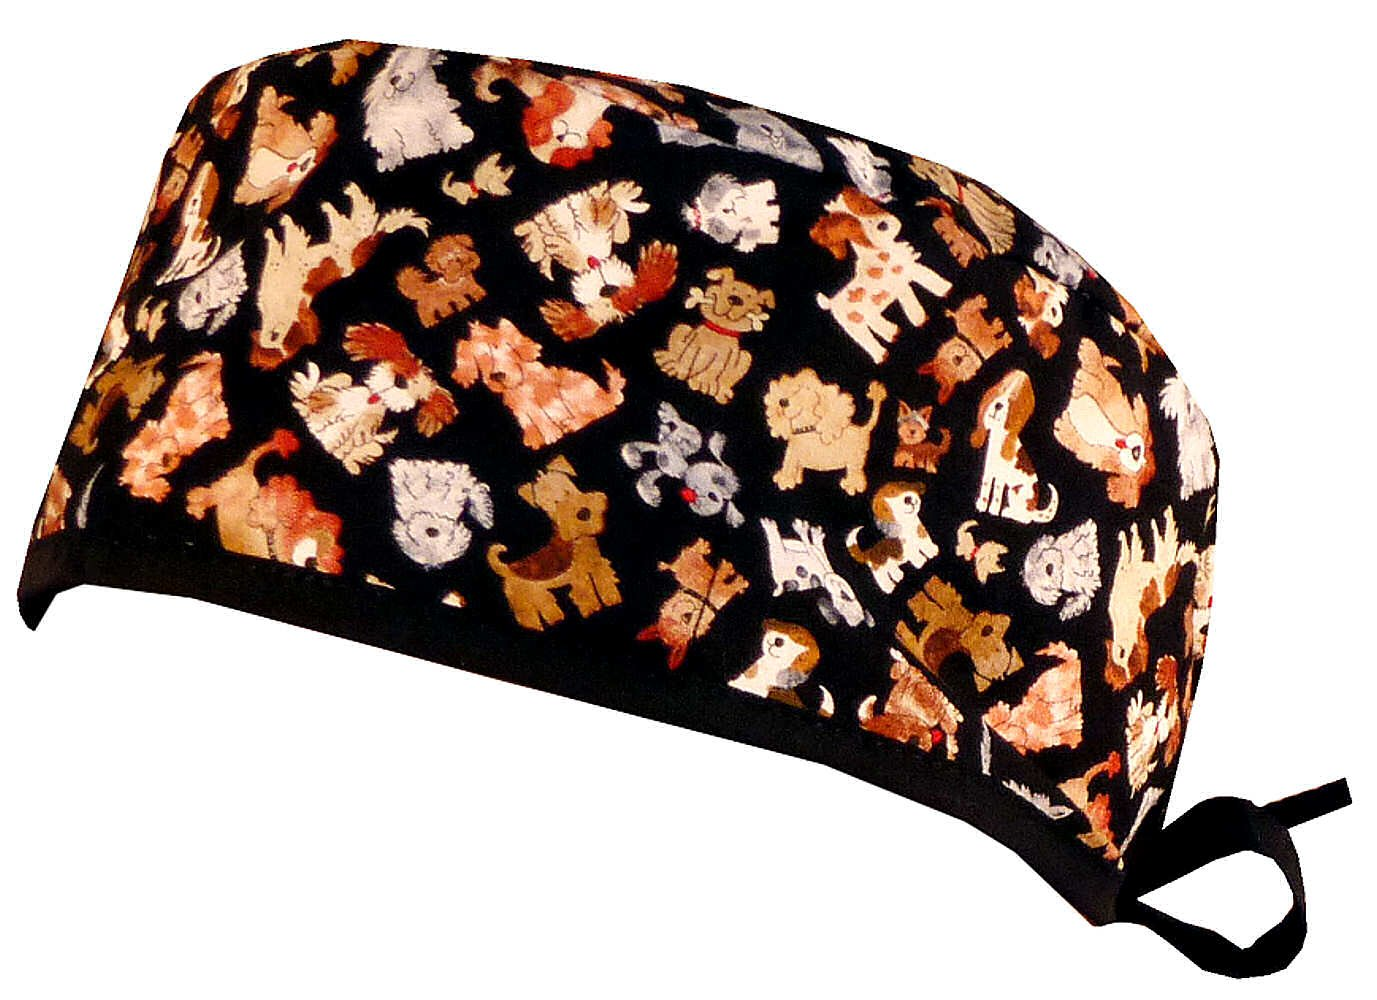 Mens and Womens Surgical Scrub Cap - Tossed Dogs by Sparkling Earth